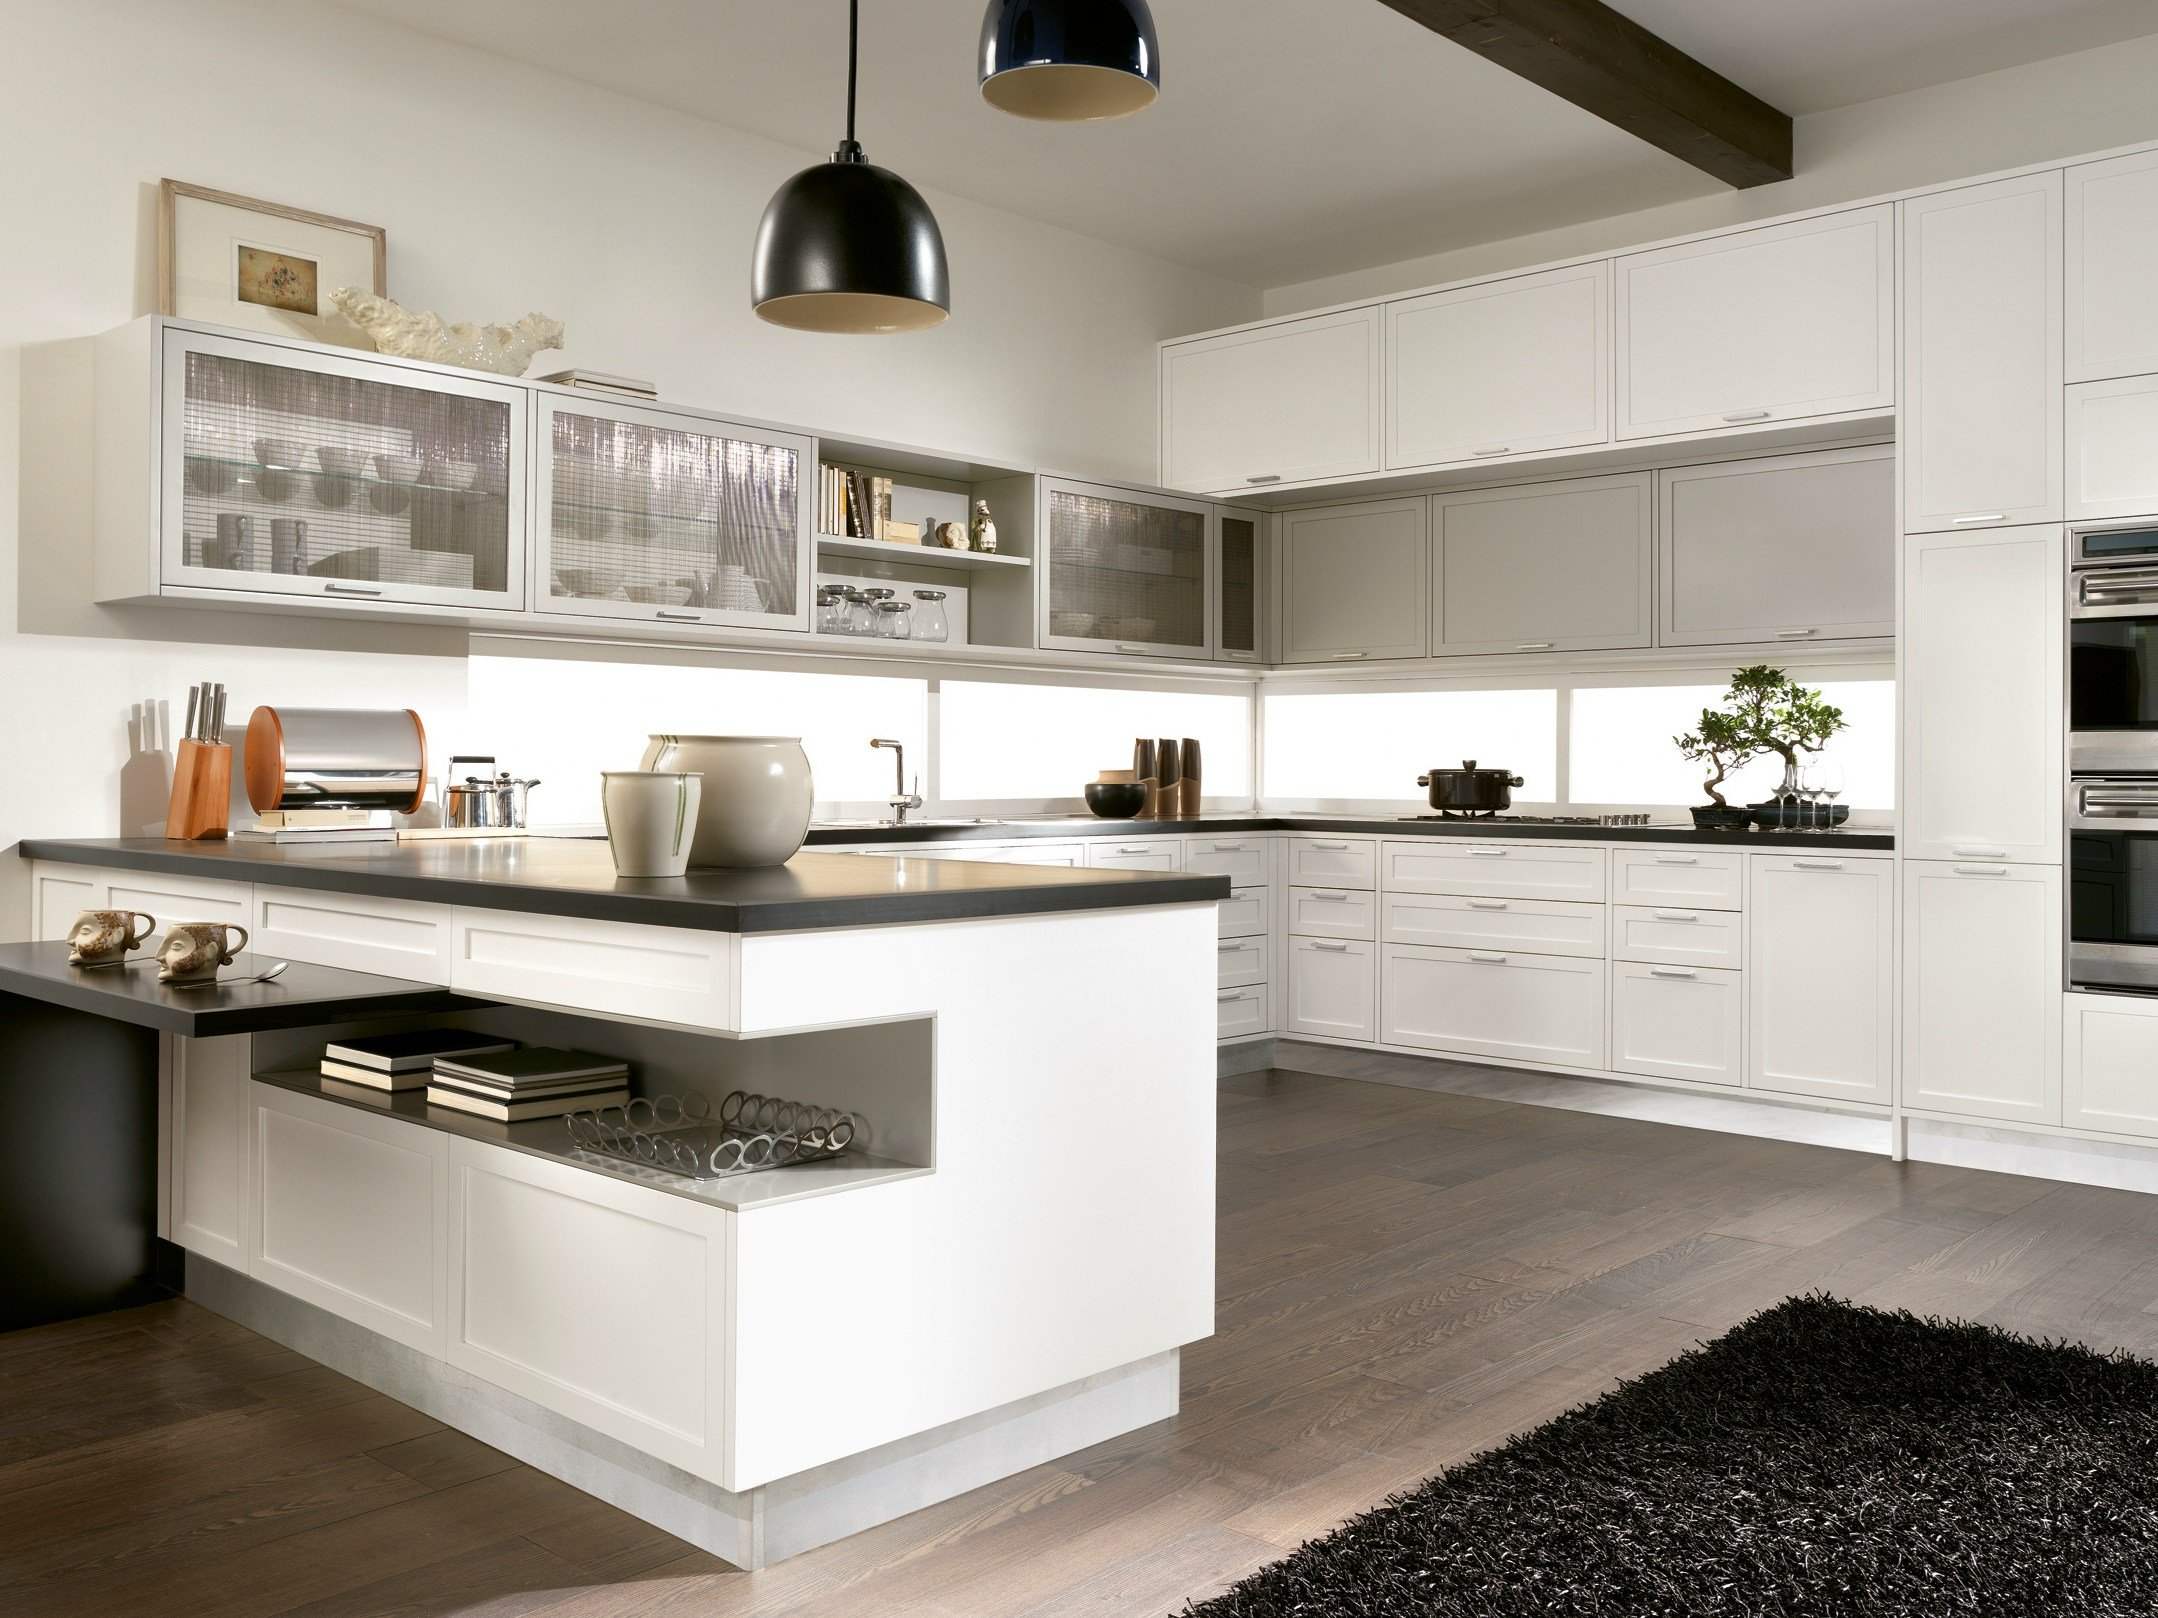 Timeline cucina con penisola by aster cucine - Penisola in cucina ...